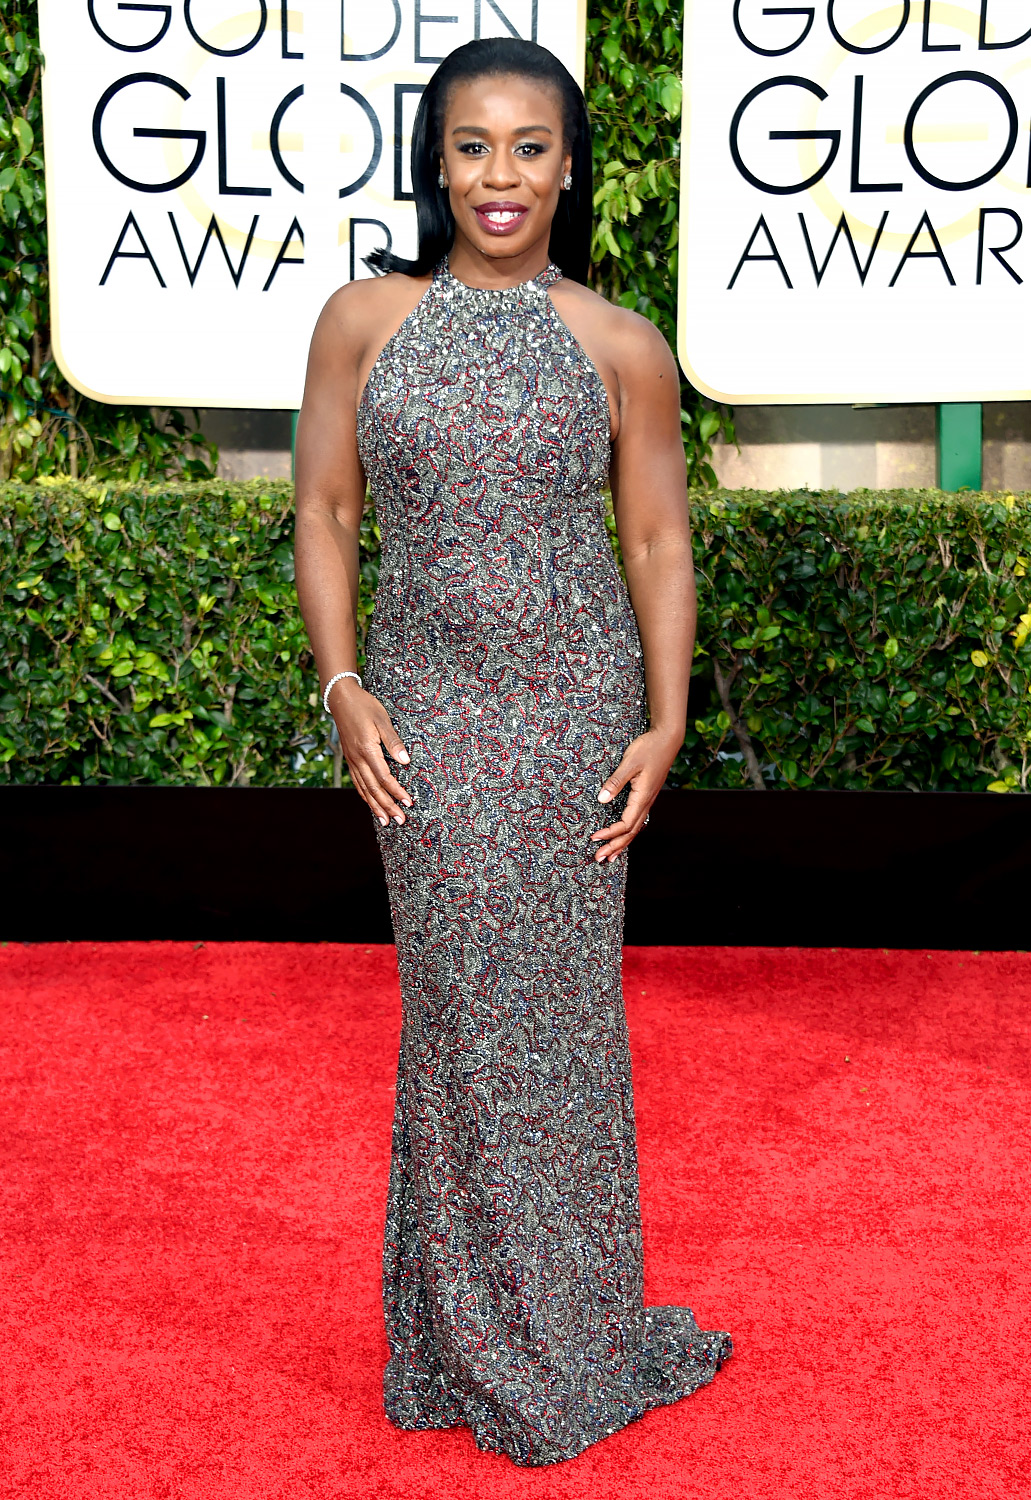 Uzo Aduba BEST PERFORMANCE BY AN ACTRESS IN A SUPPORTING ROLE IN A SERIES, MINI-SERIES OR MOTION PICTURE MADE FOR TELEVISION ORANGE IS THE NEW BLACK